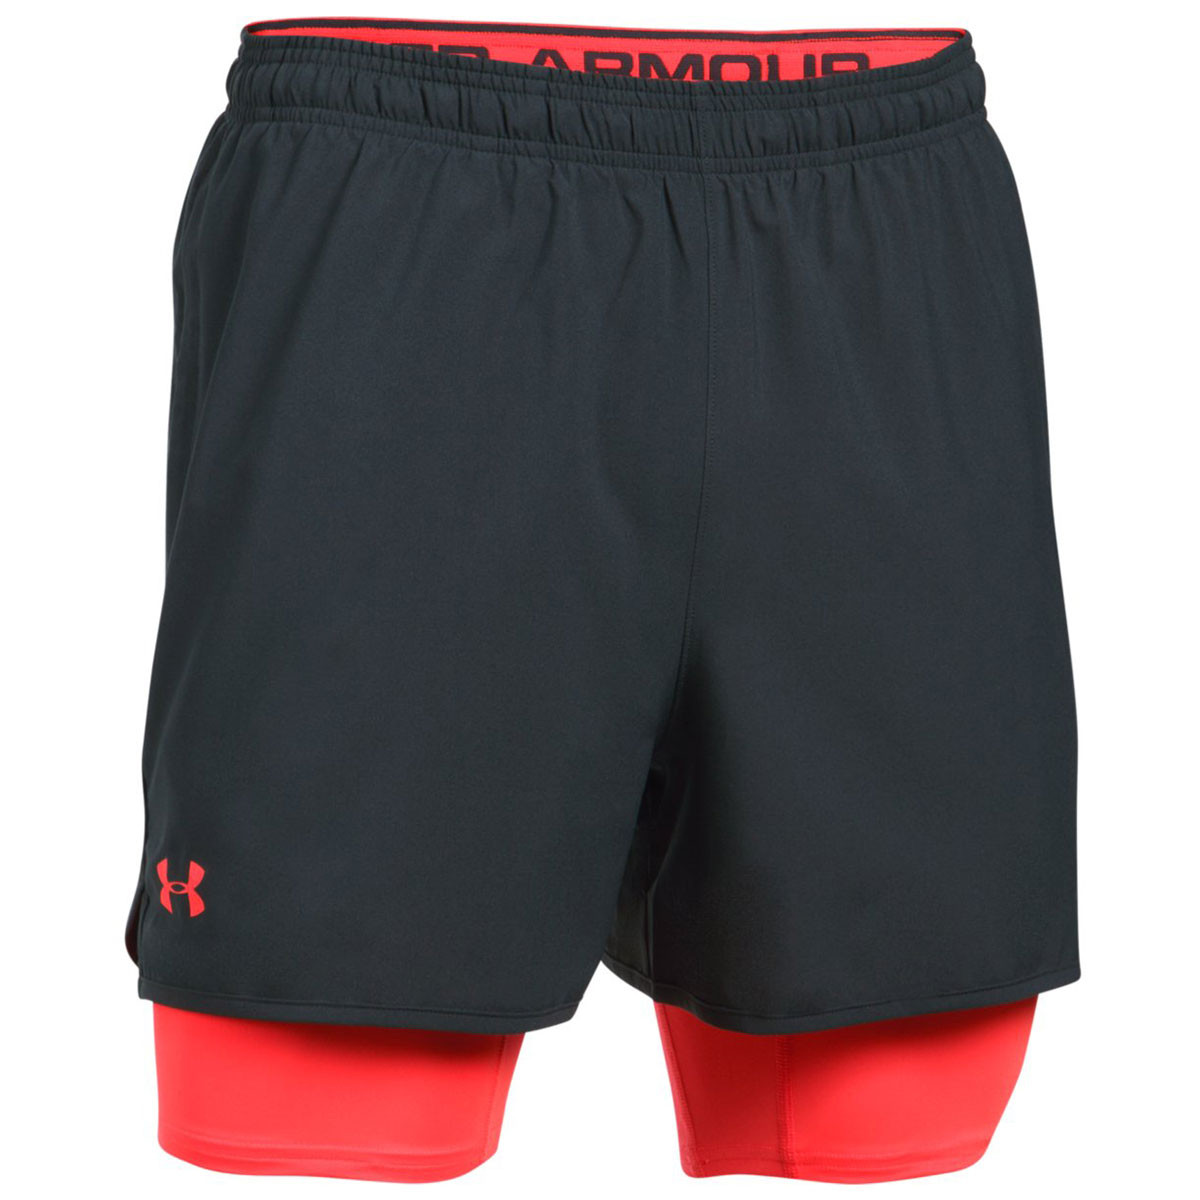 b5398985 Under Armour 2017 Mens UA Qualifier 2-IN-1 Shorts - Clothing - Men